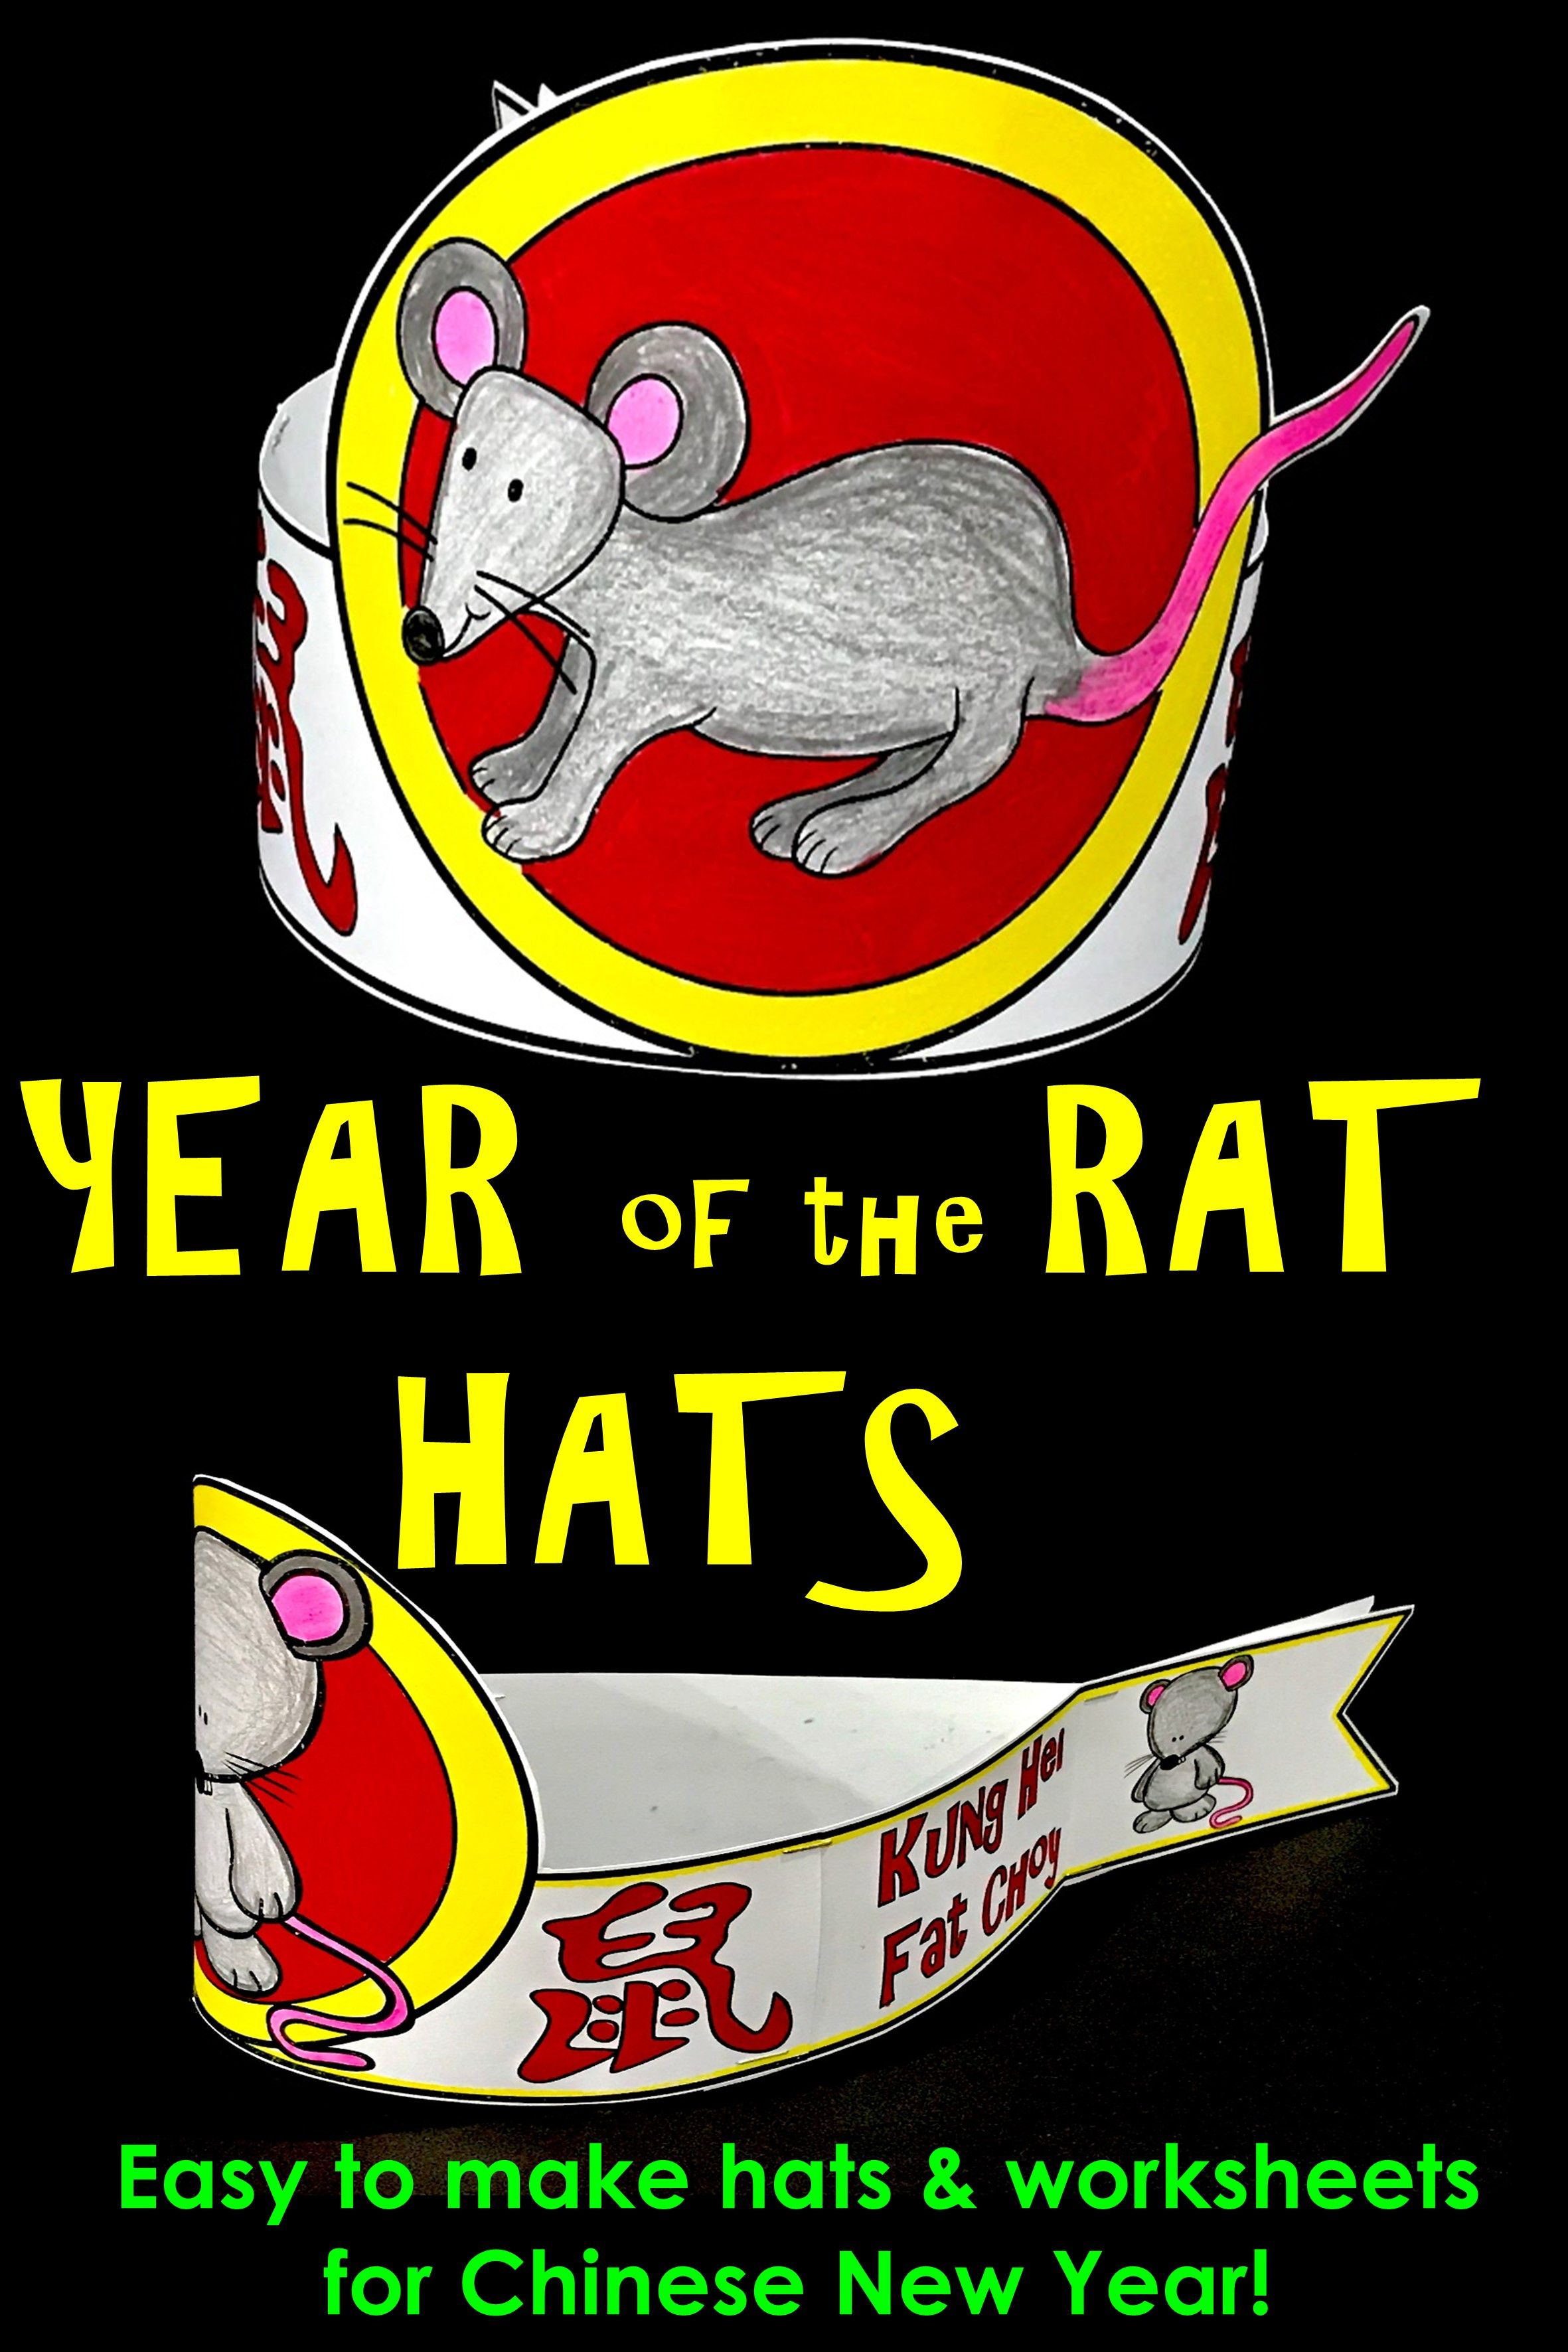 Chinese New Year Rat Hat :: Year of the Rat :: Chinese New Year Activities